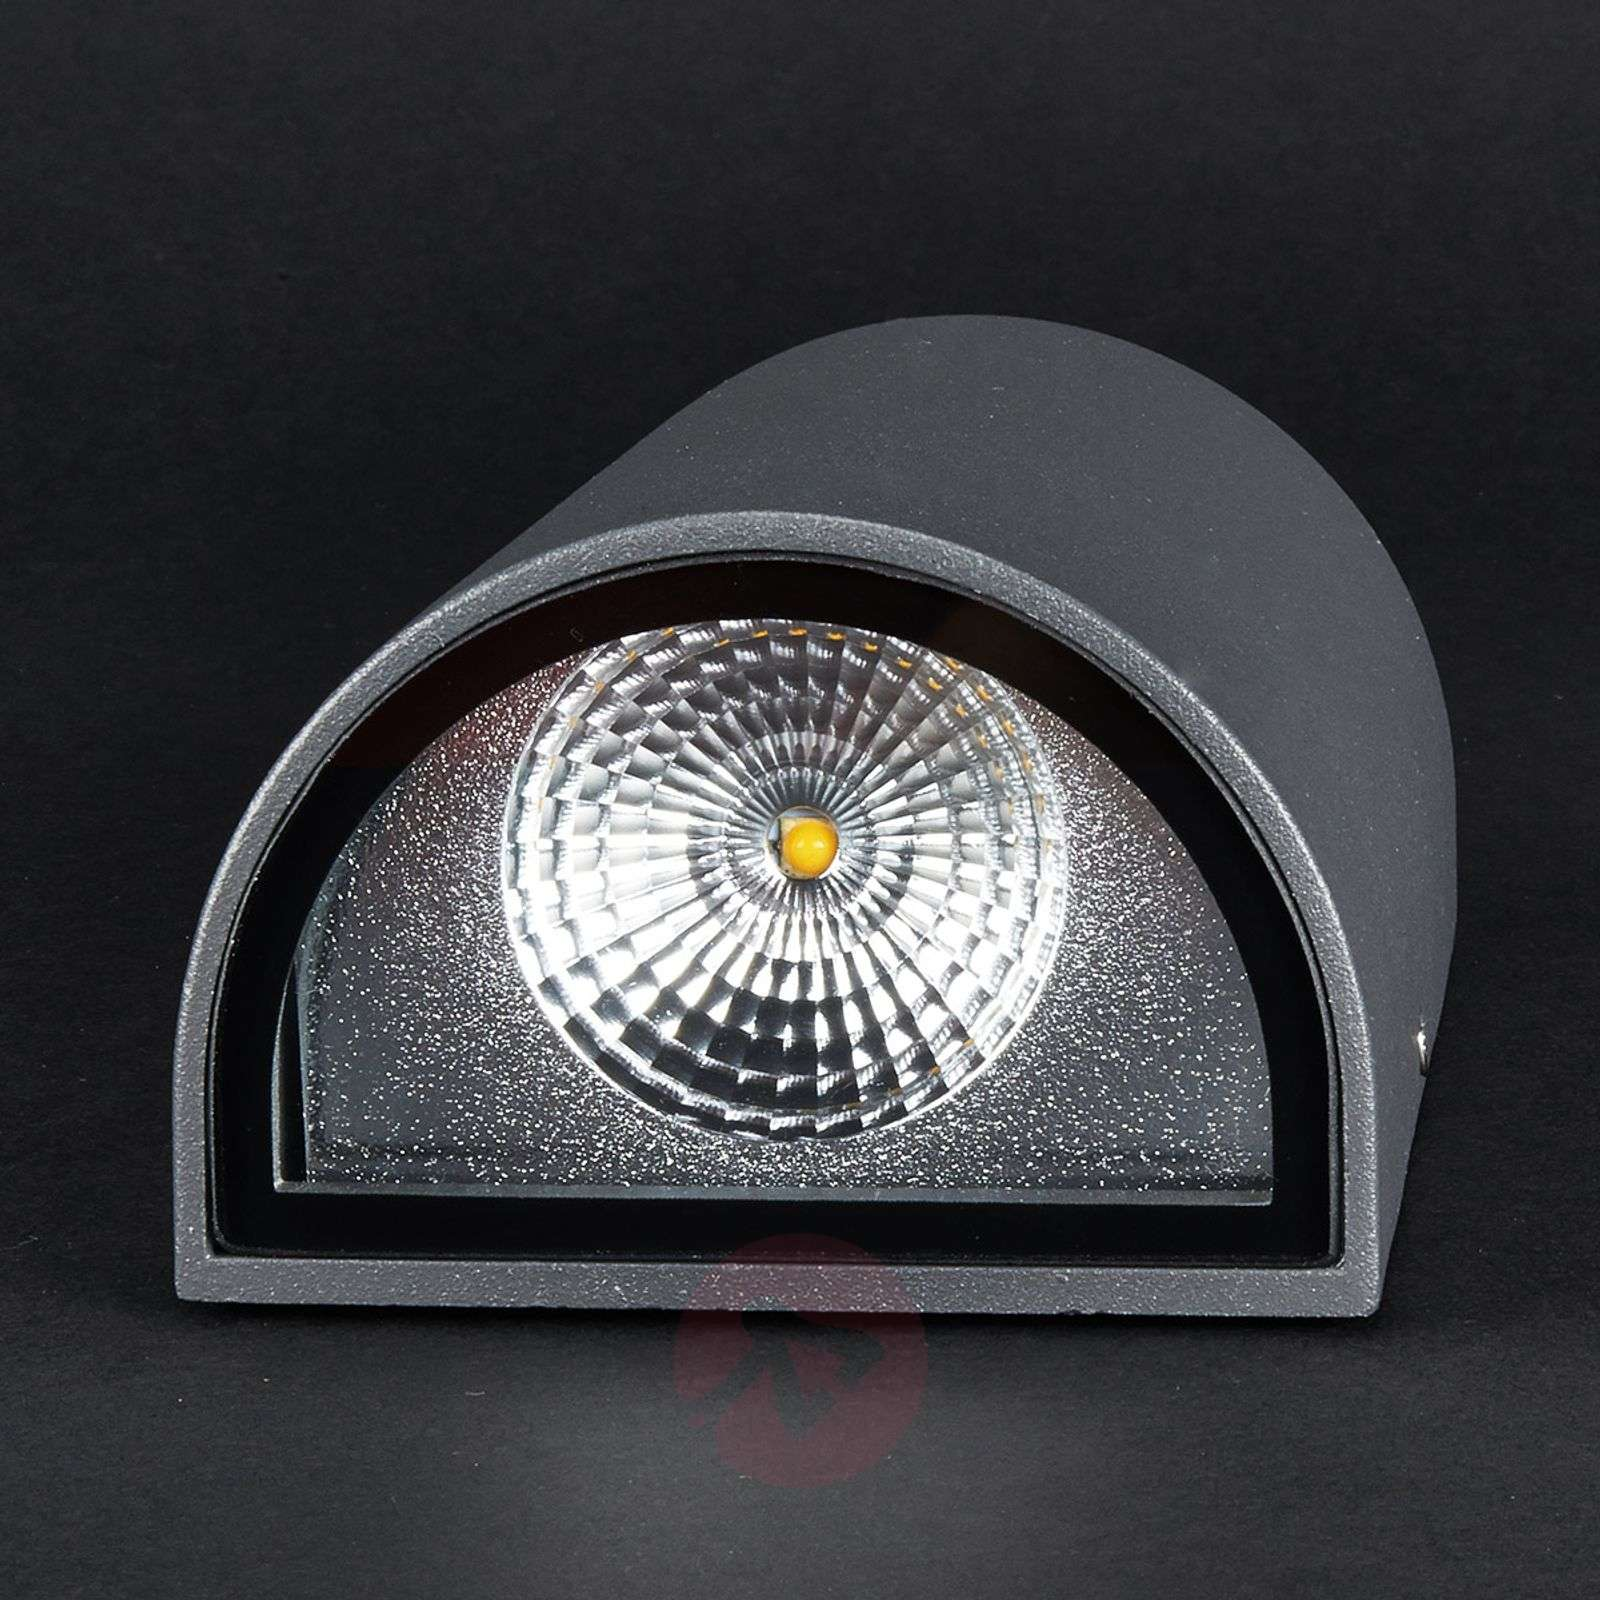 Jale semicircle LED outdoor light-9618016-01